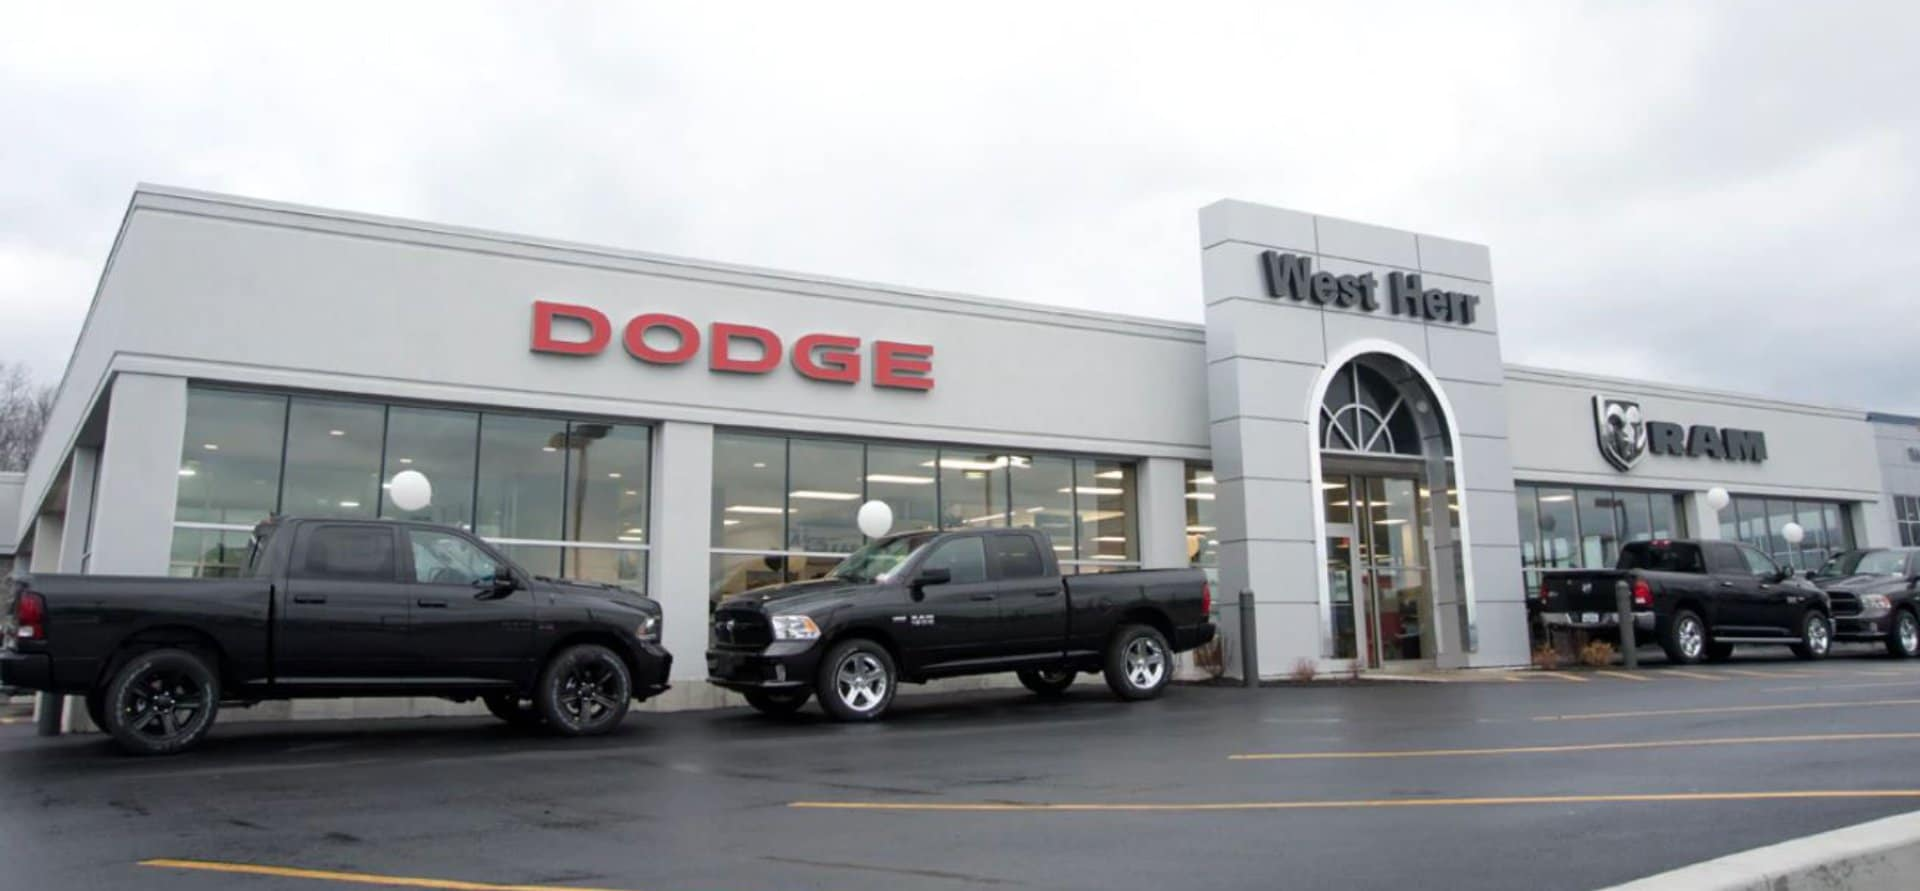 West Herr Dodge dealership